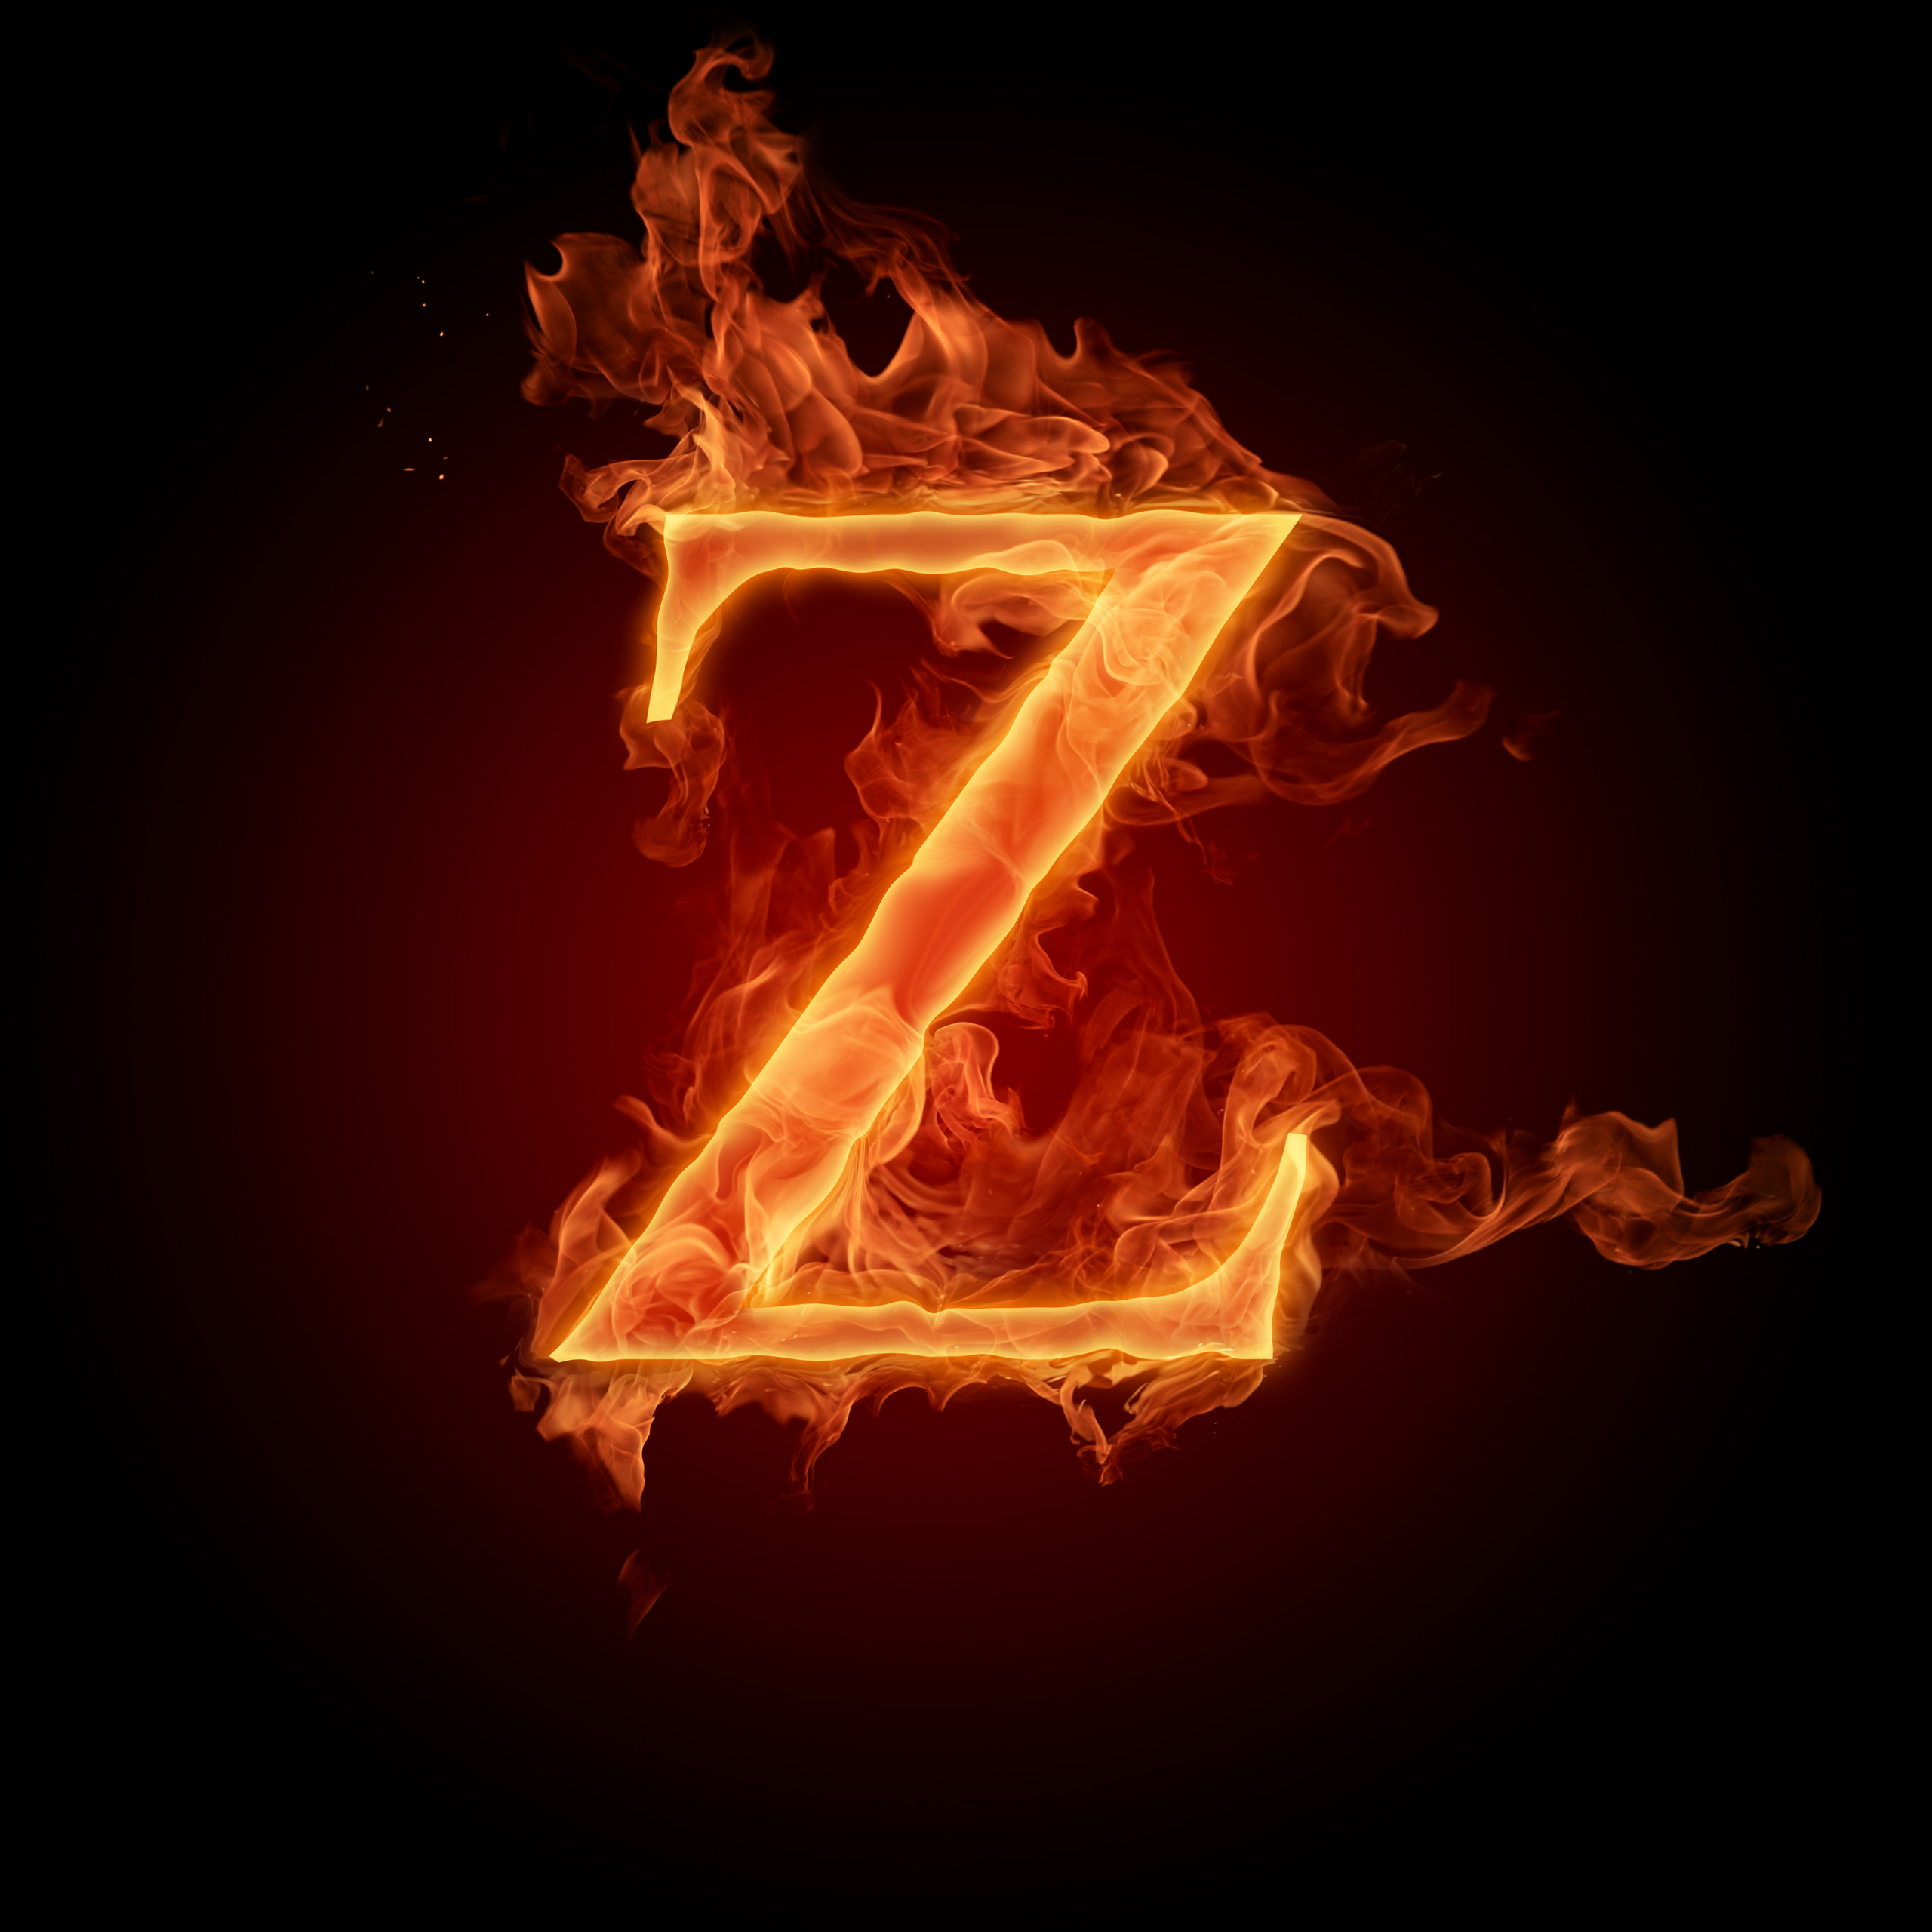 The Letter Z Images The Letter Z Hd Fond D Ecran And Background